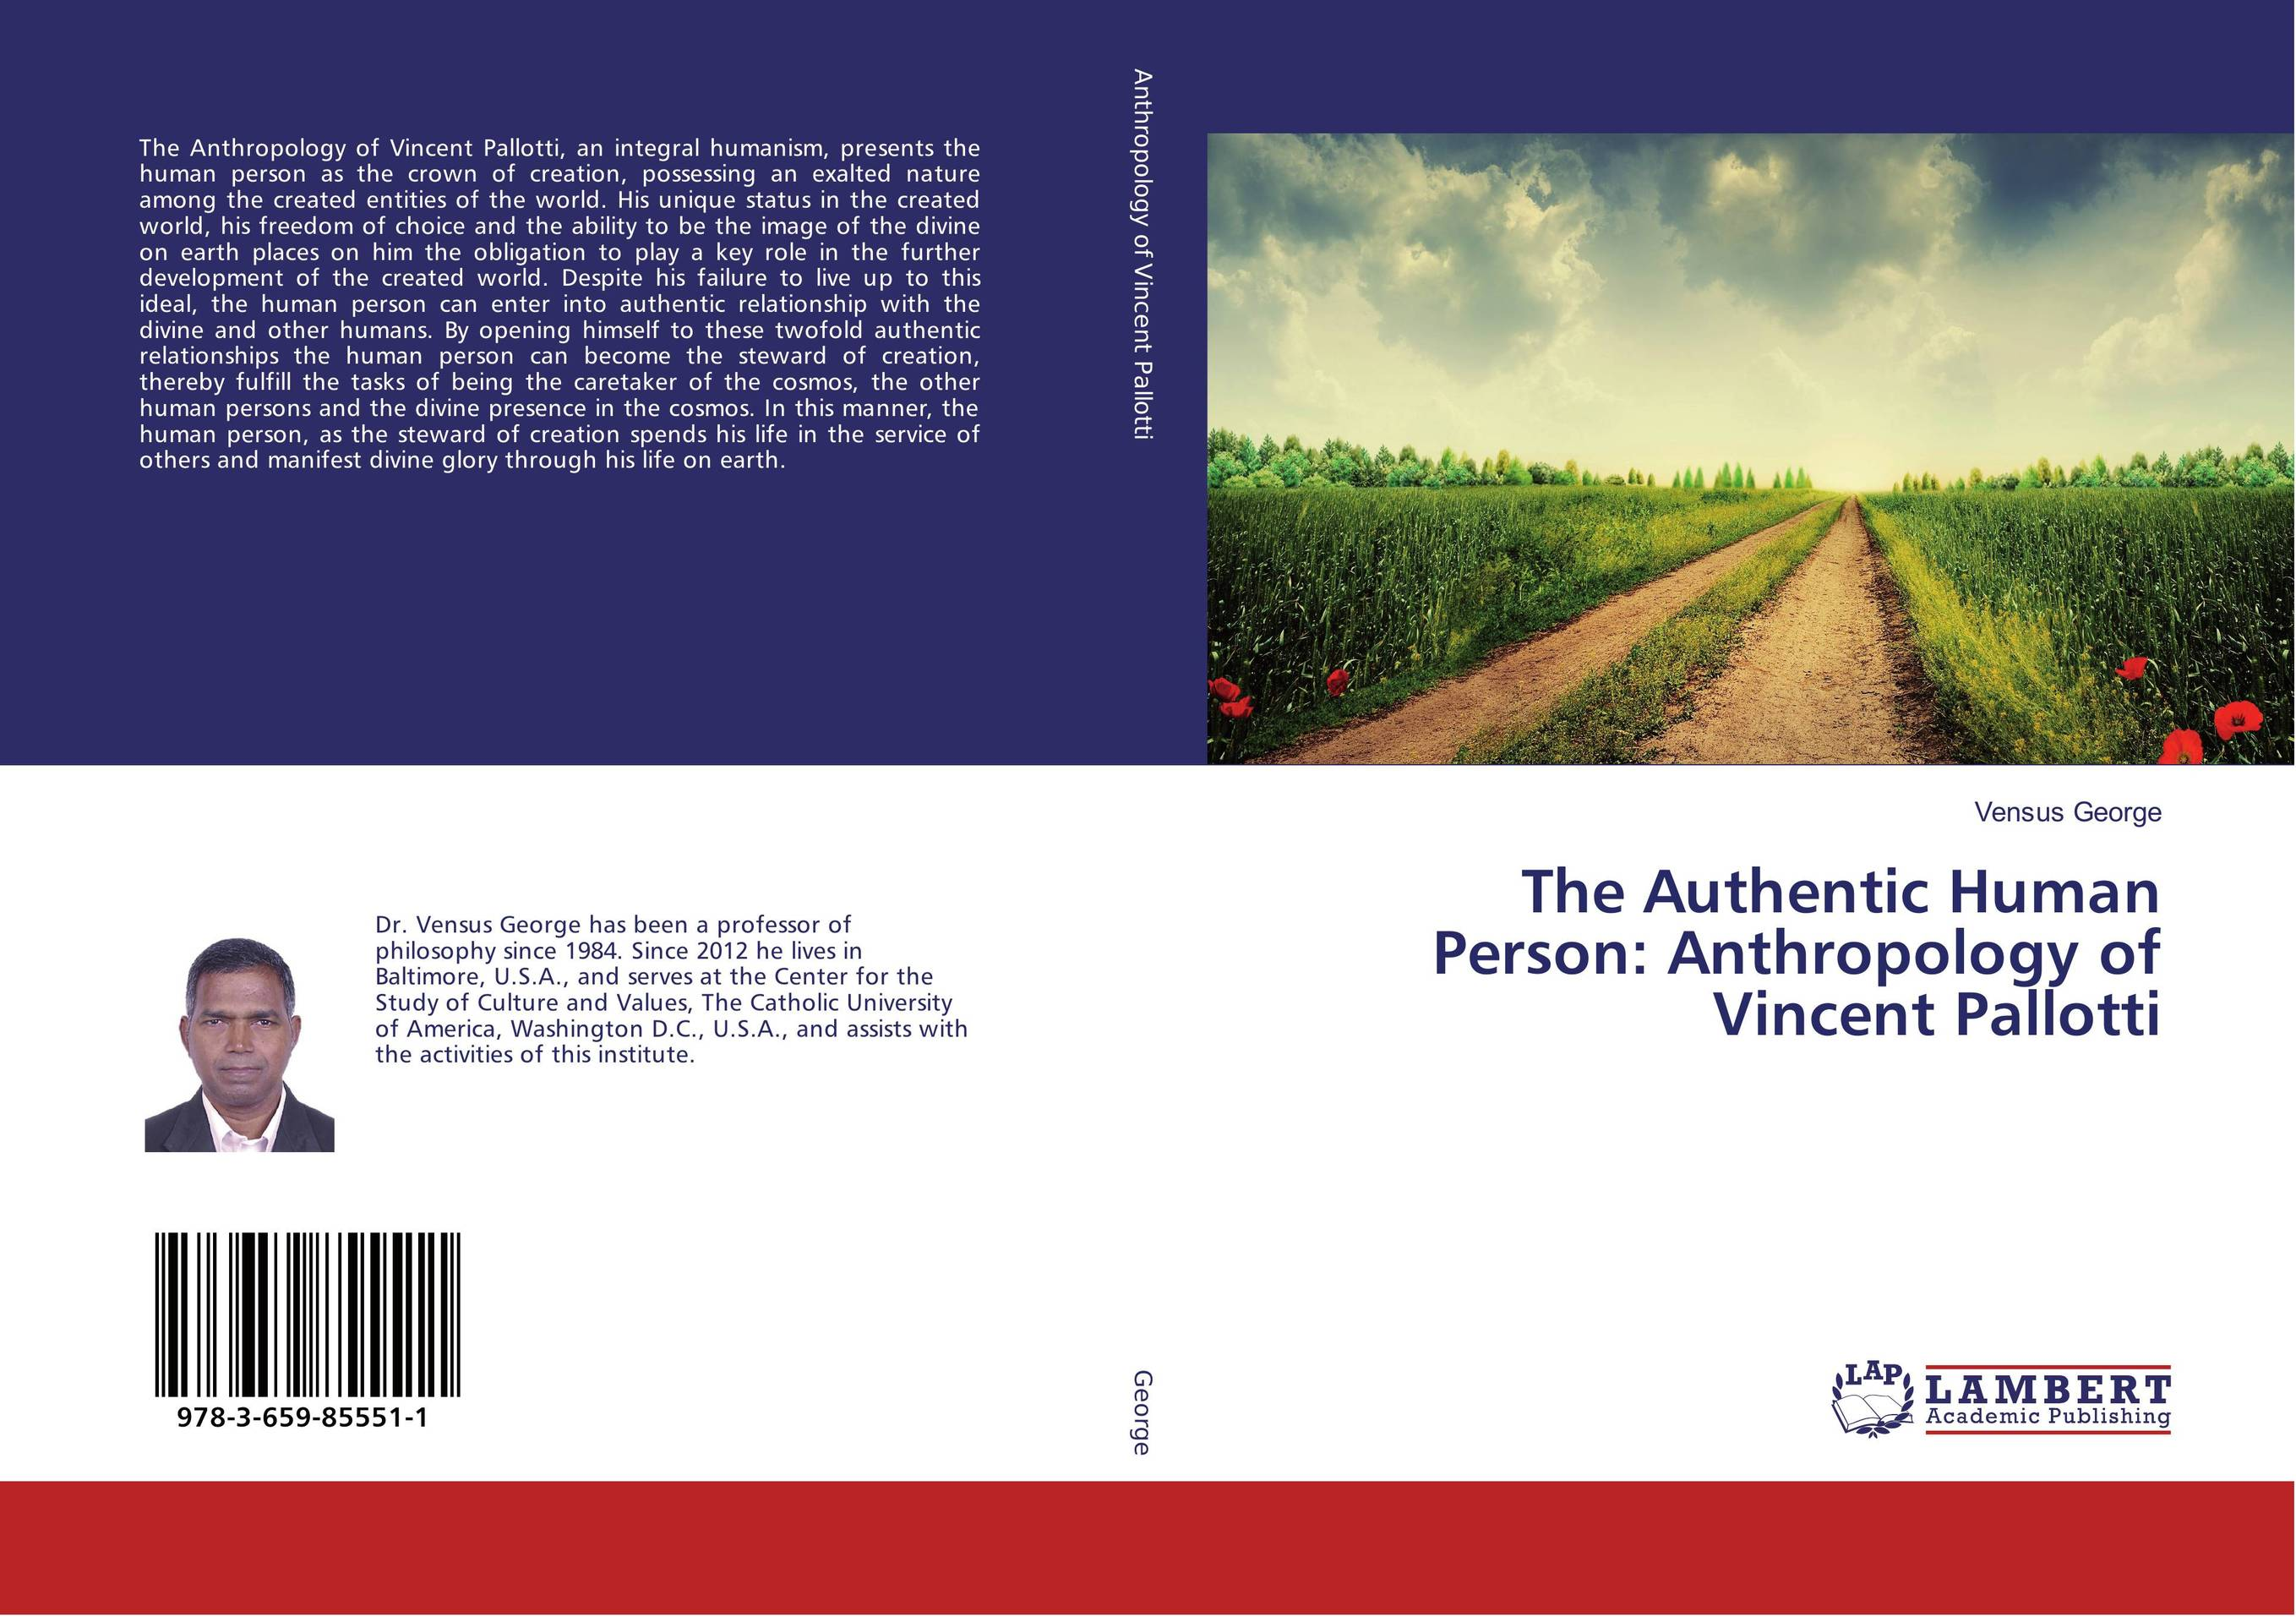 The Authentic Human Person: Anthropology of Vincent Pallotti scientific and mythological ways of knowing in anthropology